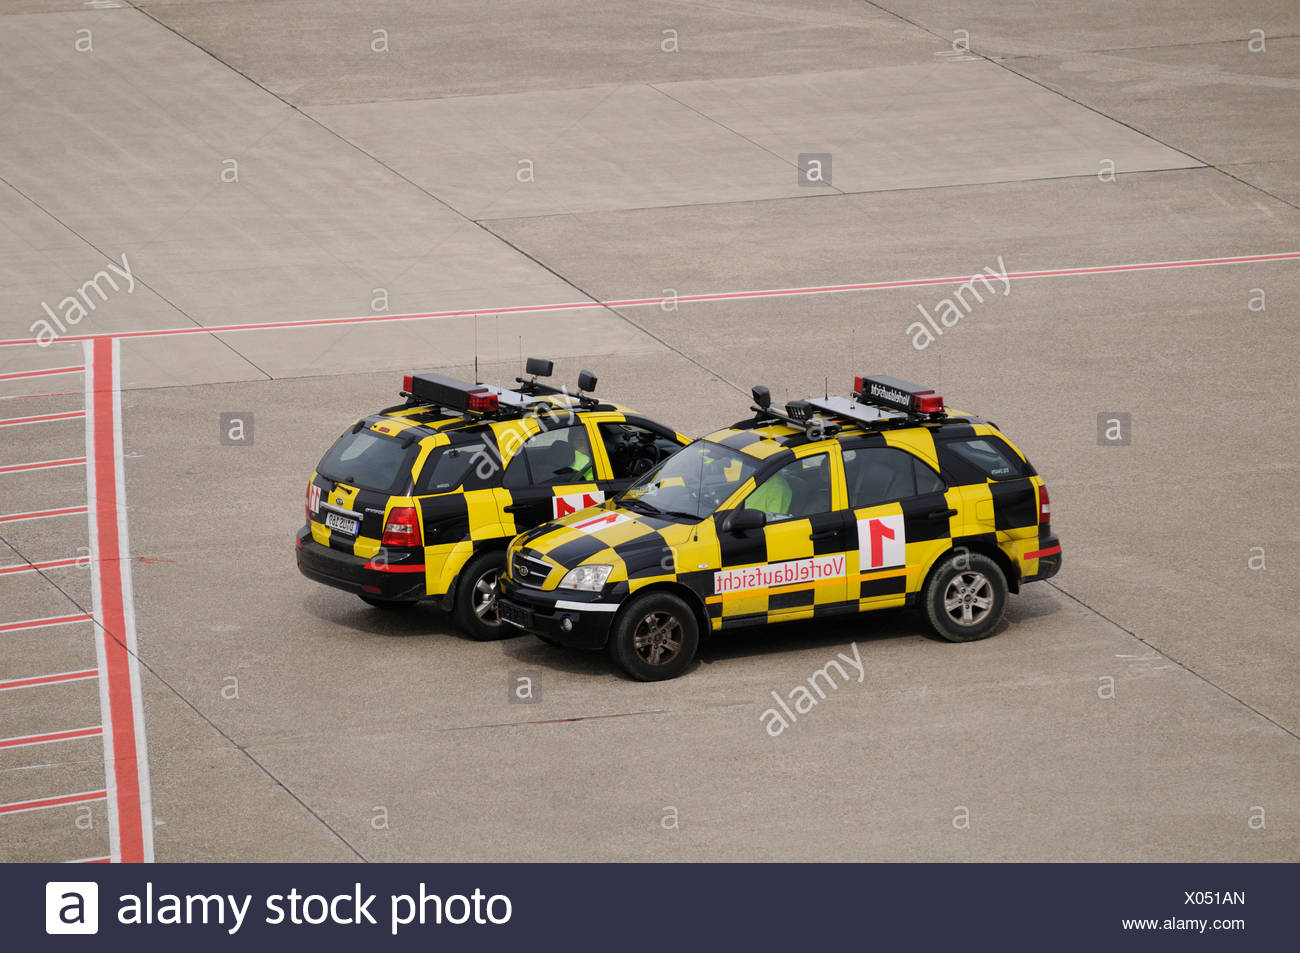 Two yellow and black chequered vehicles on a runway, follow-me cars, Duesseldorf International Airport, North Rhine-Westphalia, - Stock Image